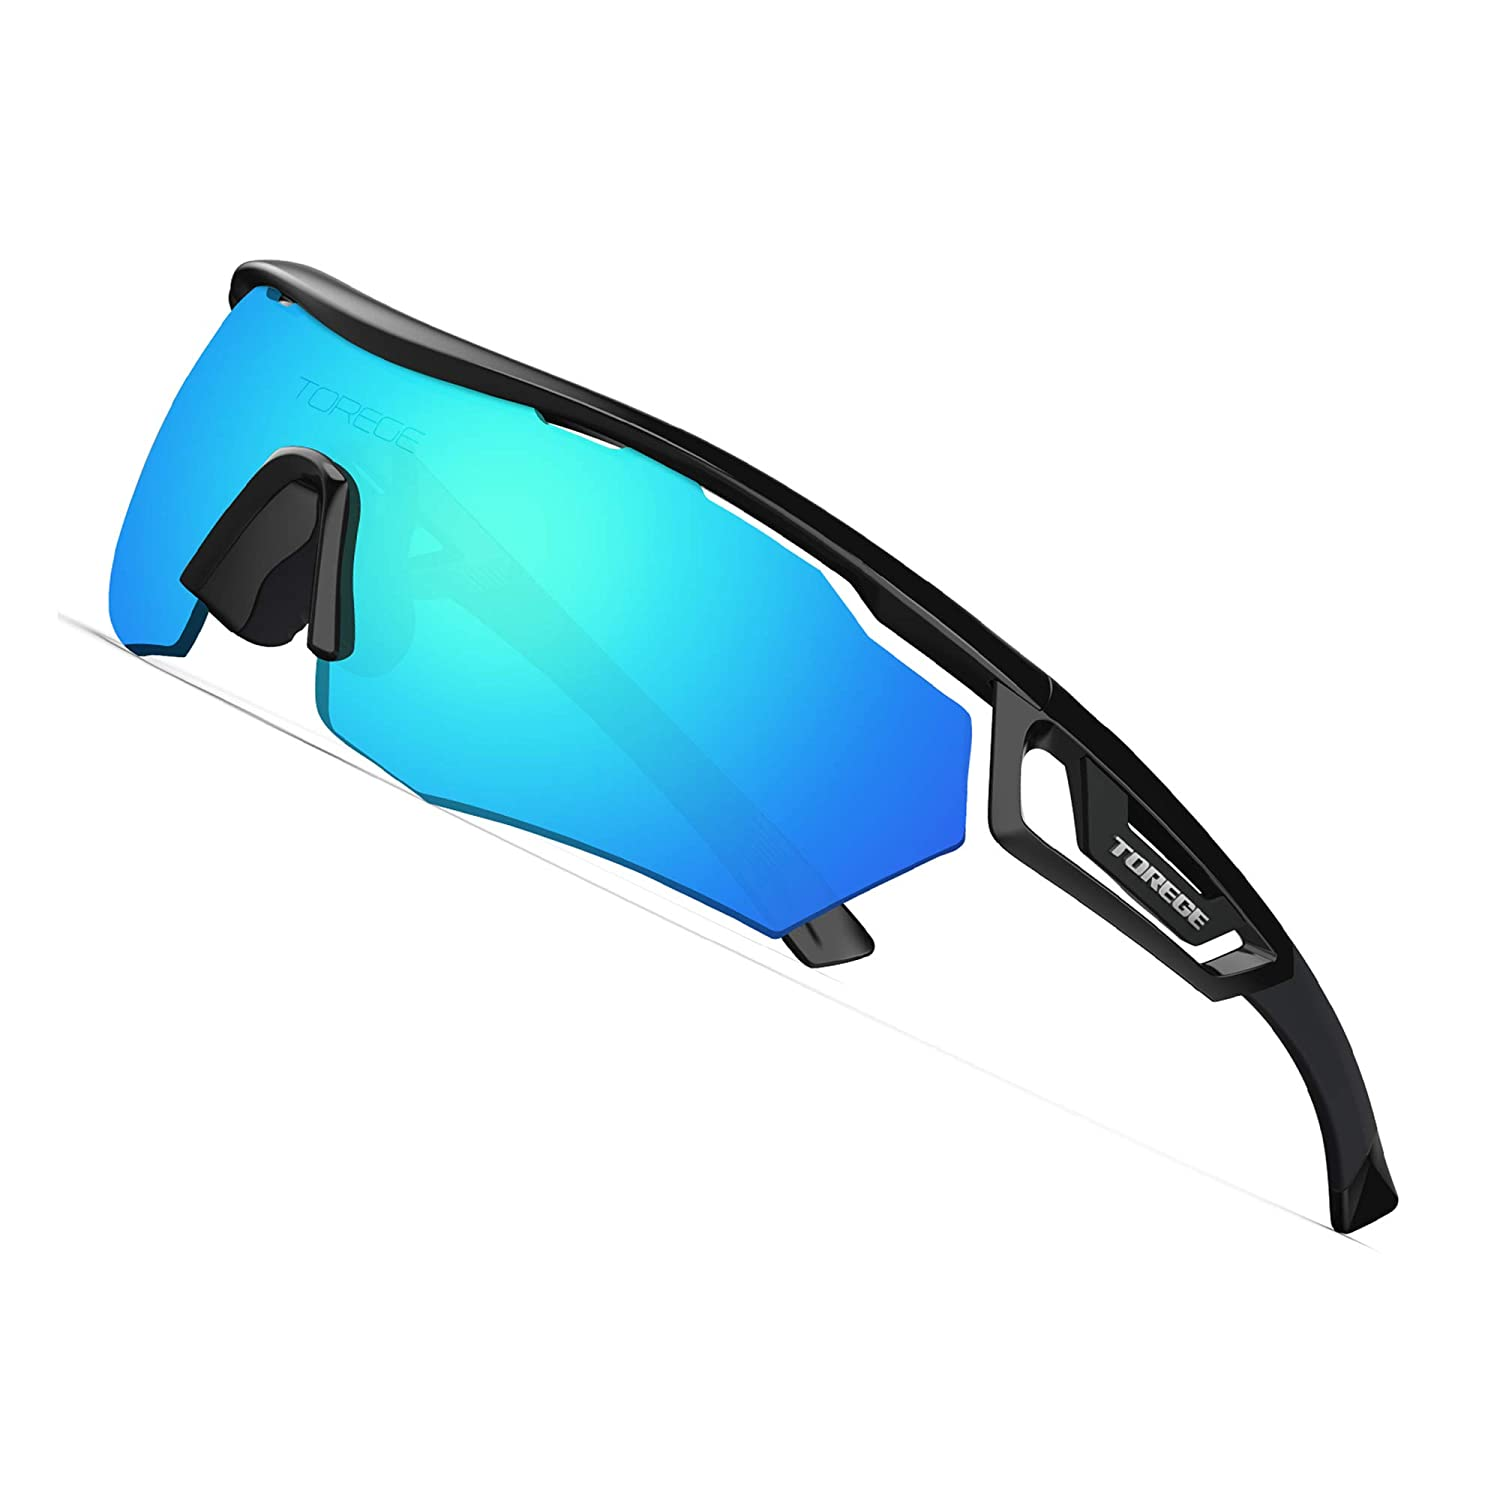 a68a1ae11 Amazon.com : TOREGE Polarized Sports Sunglasses with 3 Interchangeable  Lenes for Men Women Cycling Running Driving Fishing Golf Baseball Glasses  TR05 (Black ...